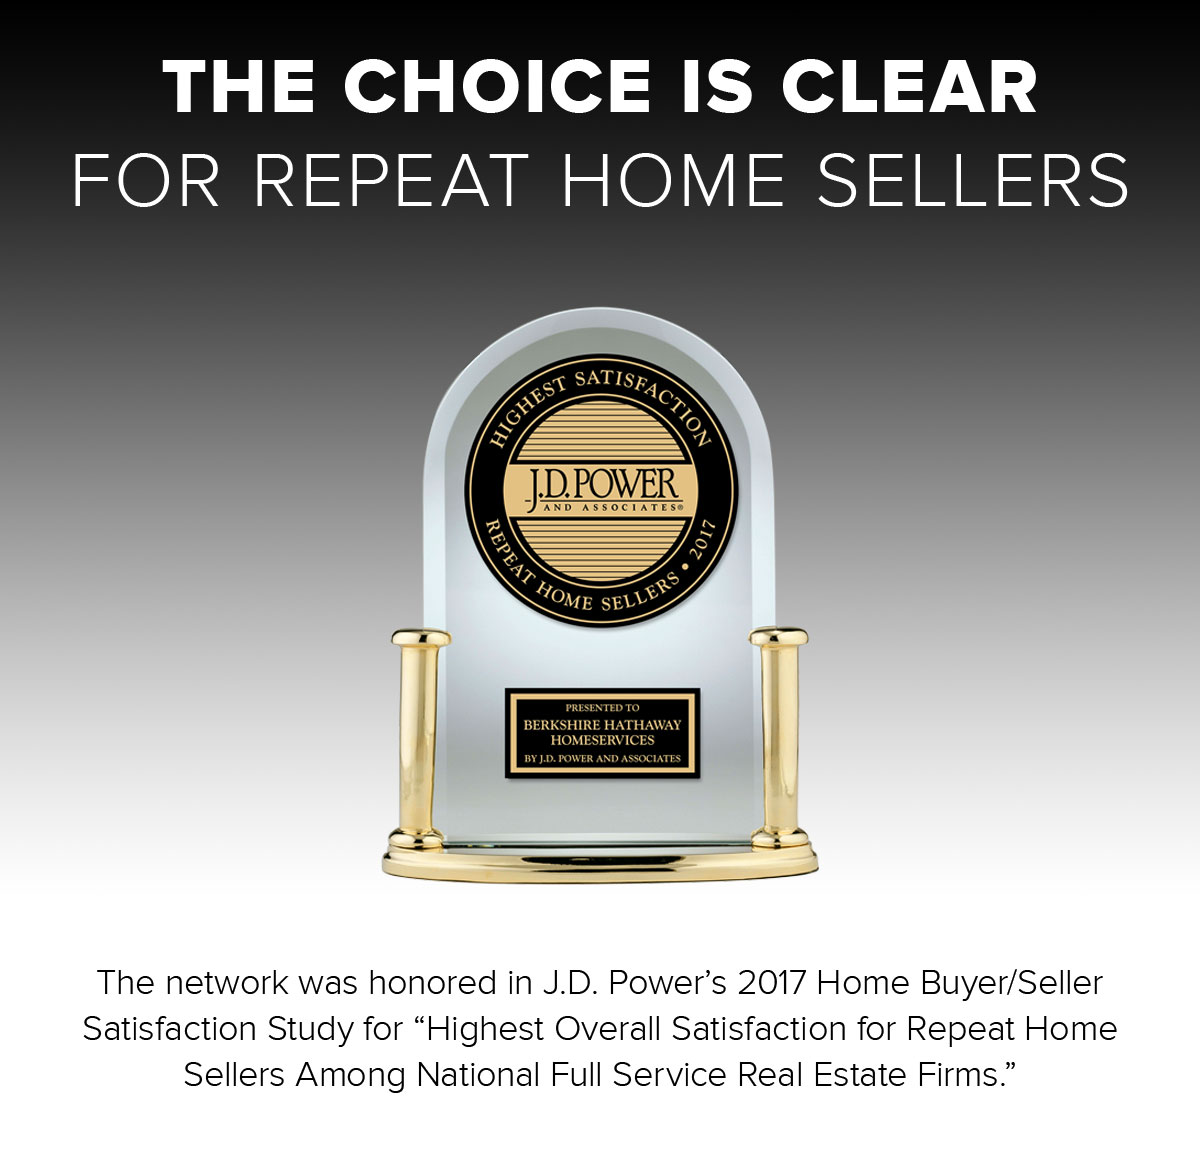 The Choice is Clear for Repeat Home Sellers